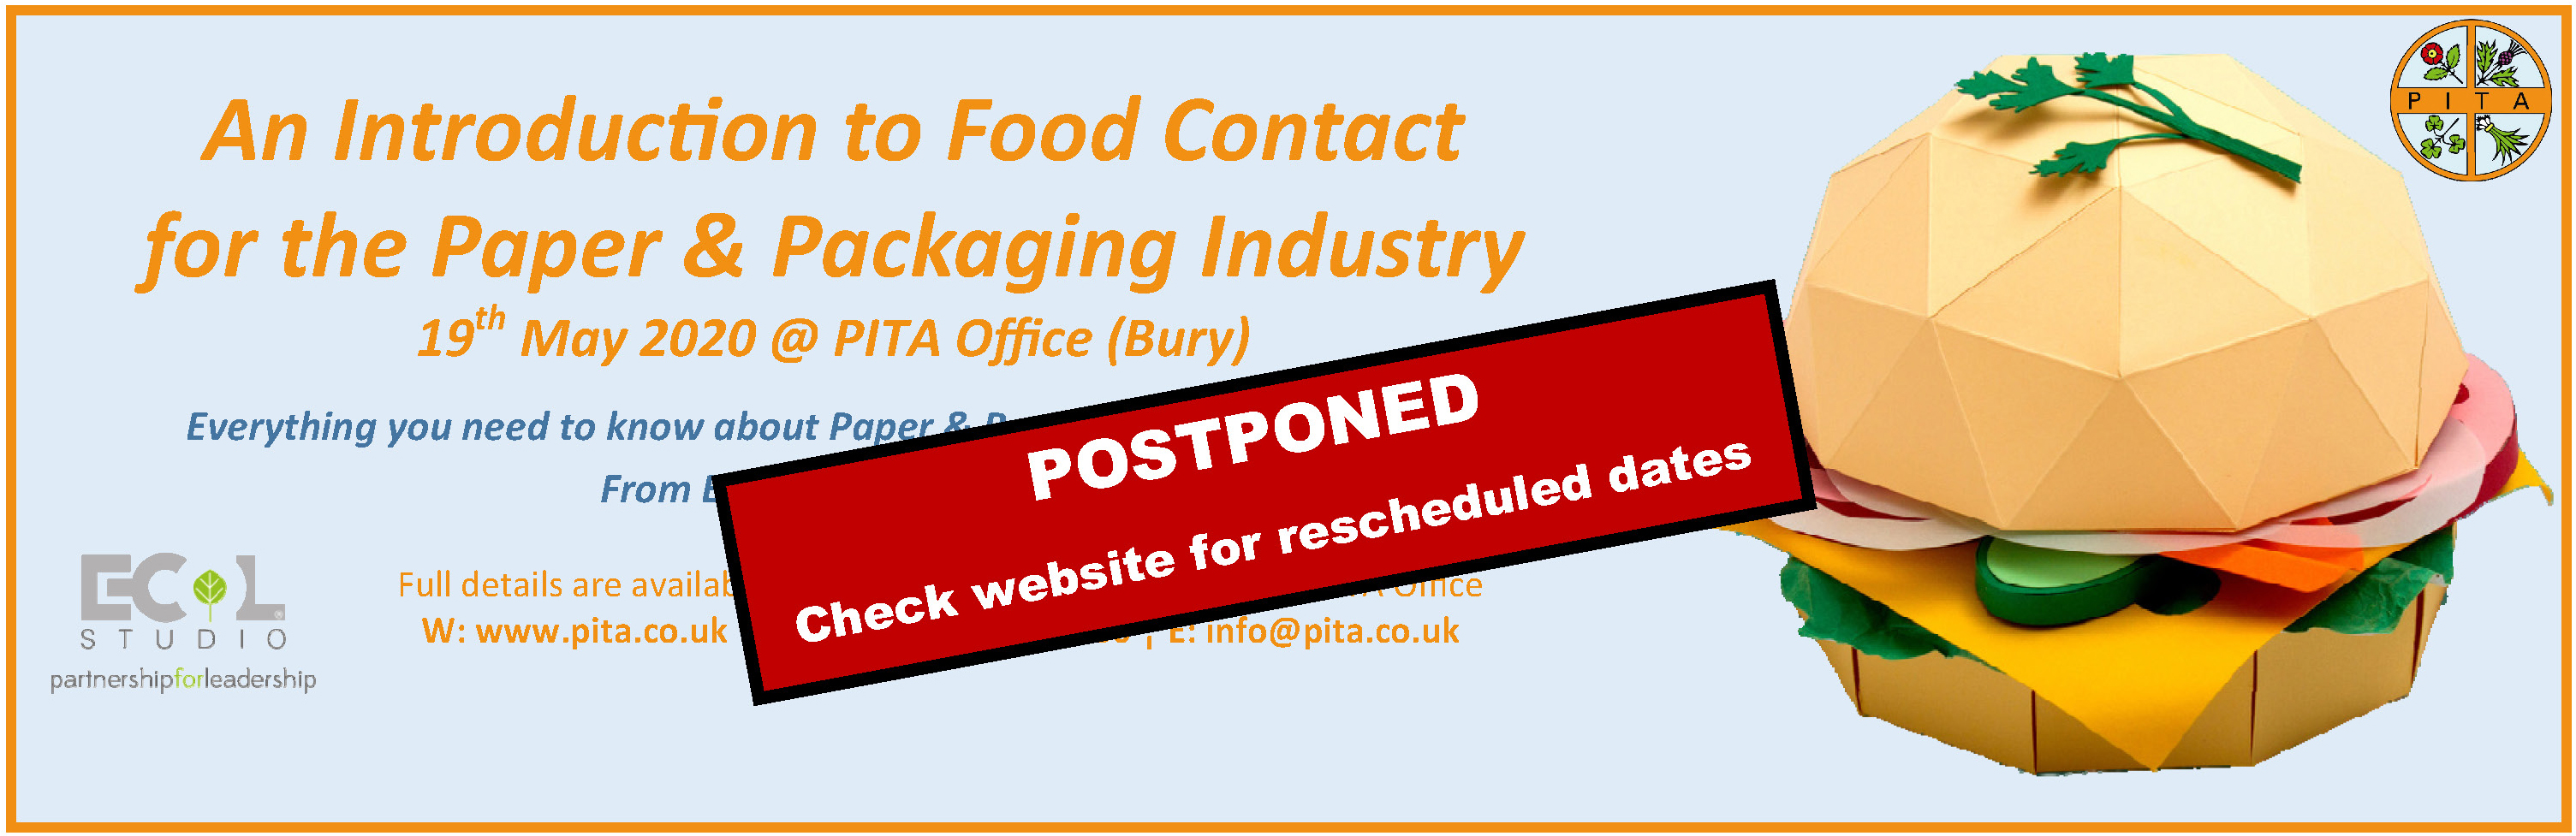 Food Contact Course 2020 update 1 POSTPONED Banner Ad